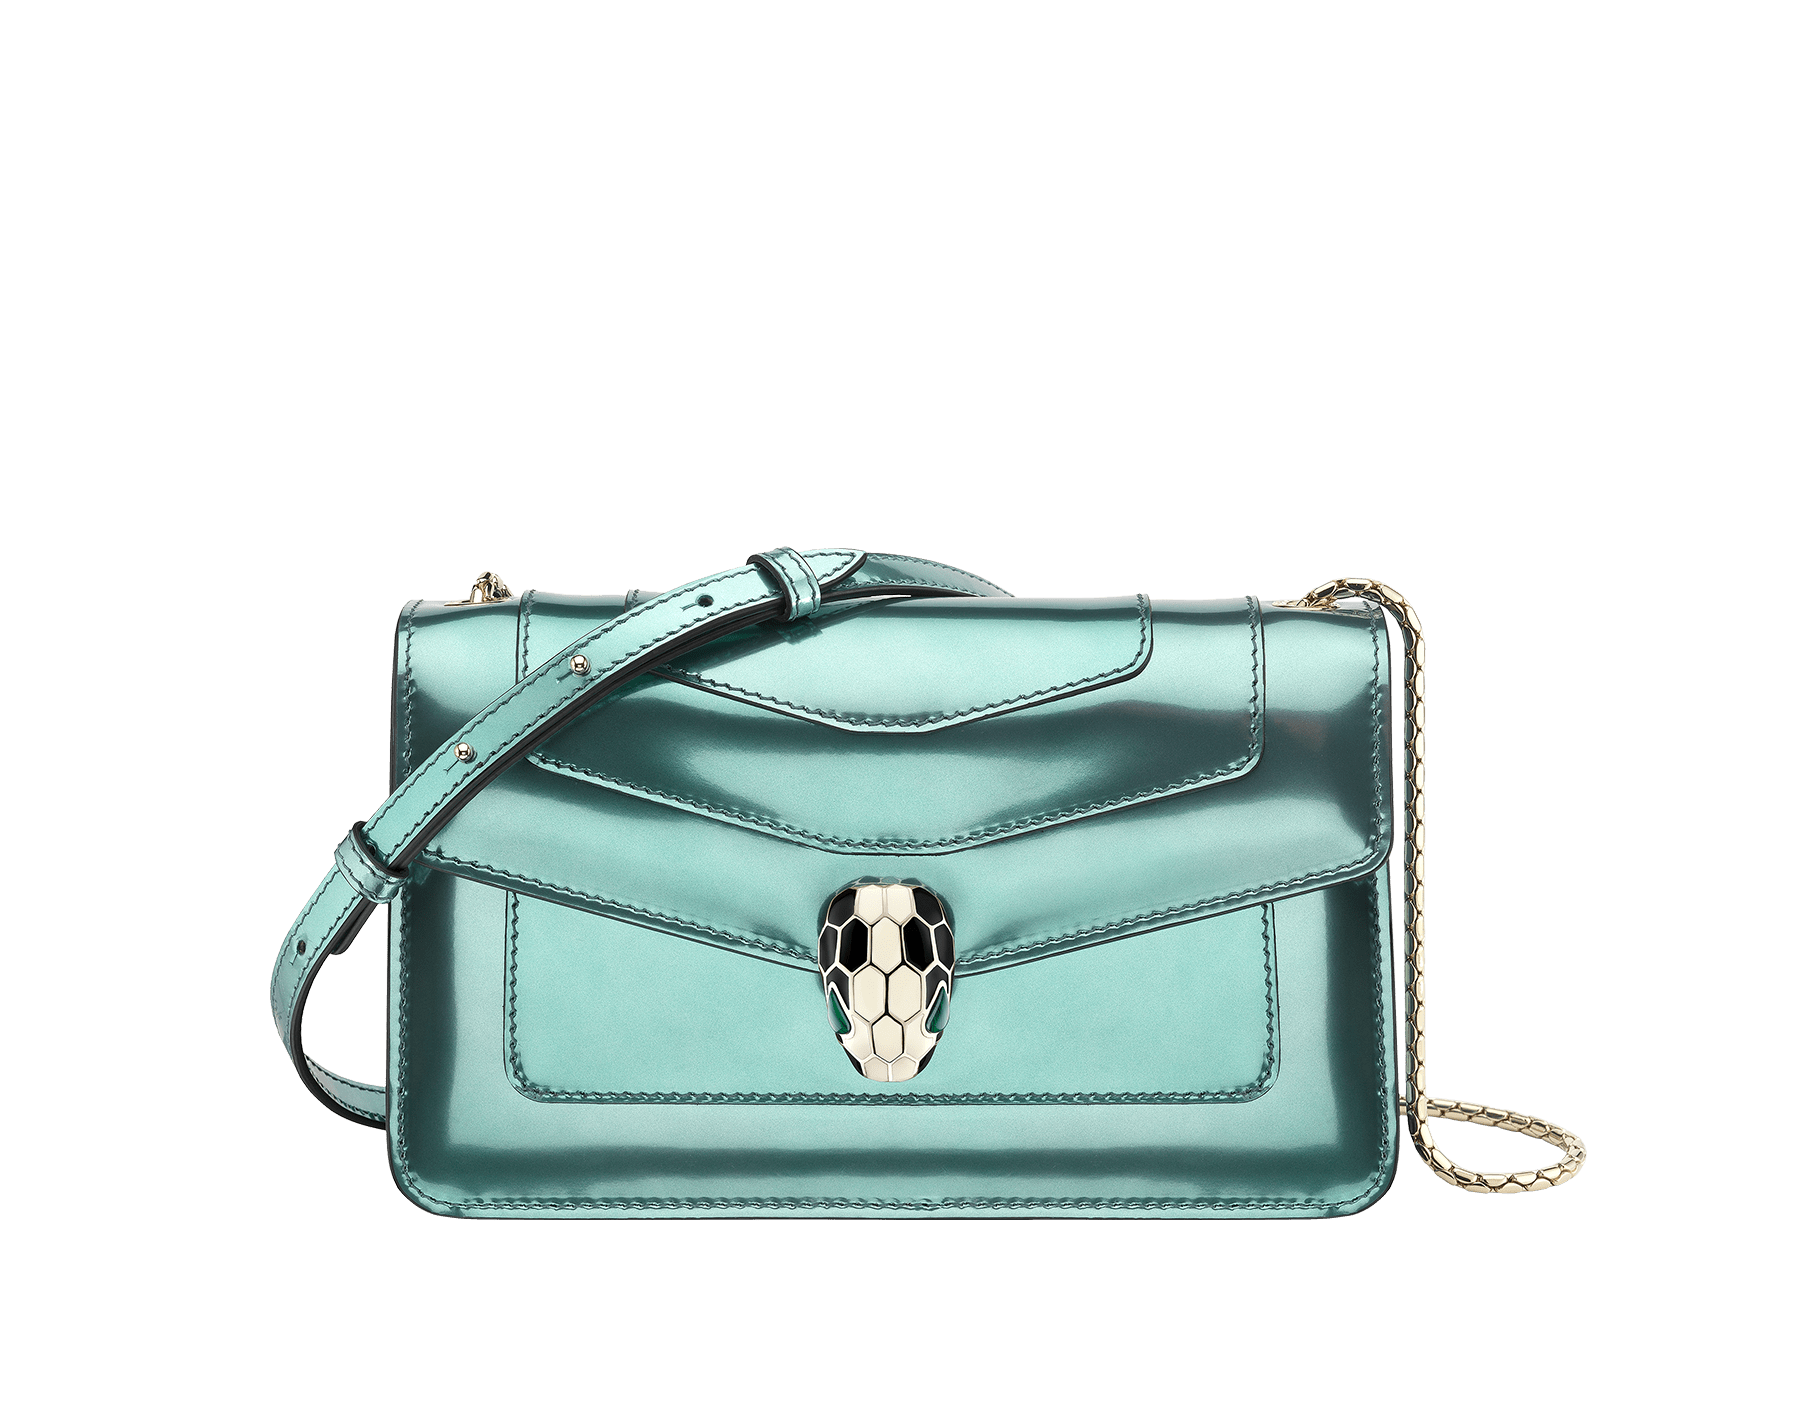 """""""Serpenti Forever """" crossbody bag in glacier turquoise brushed metallic calf leather. Iconic snakehead closure in light gold plated brass enriched with black and white enamel and green malachite eyes. 287048 image 1"""